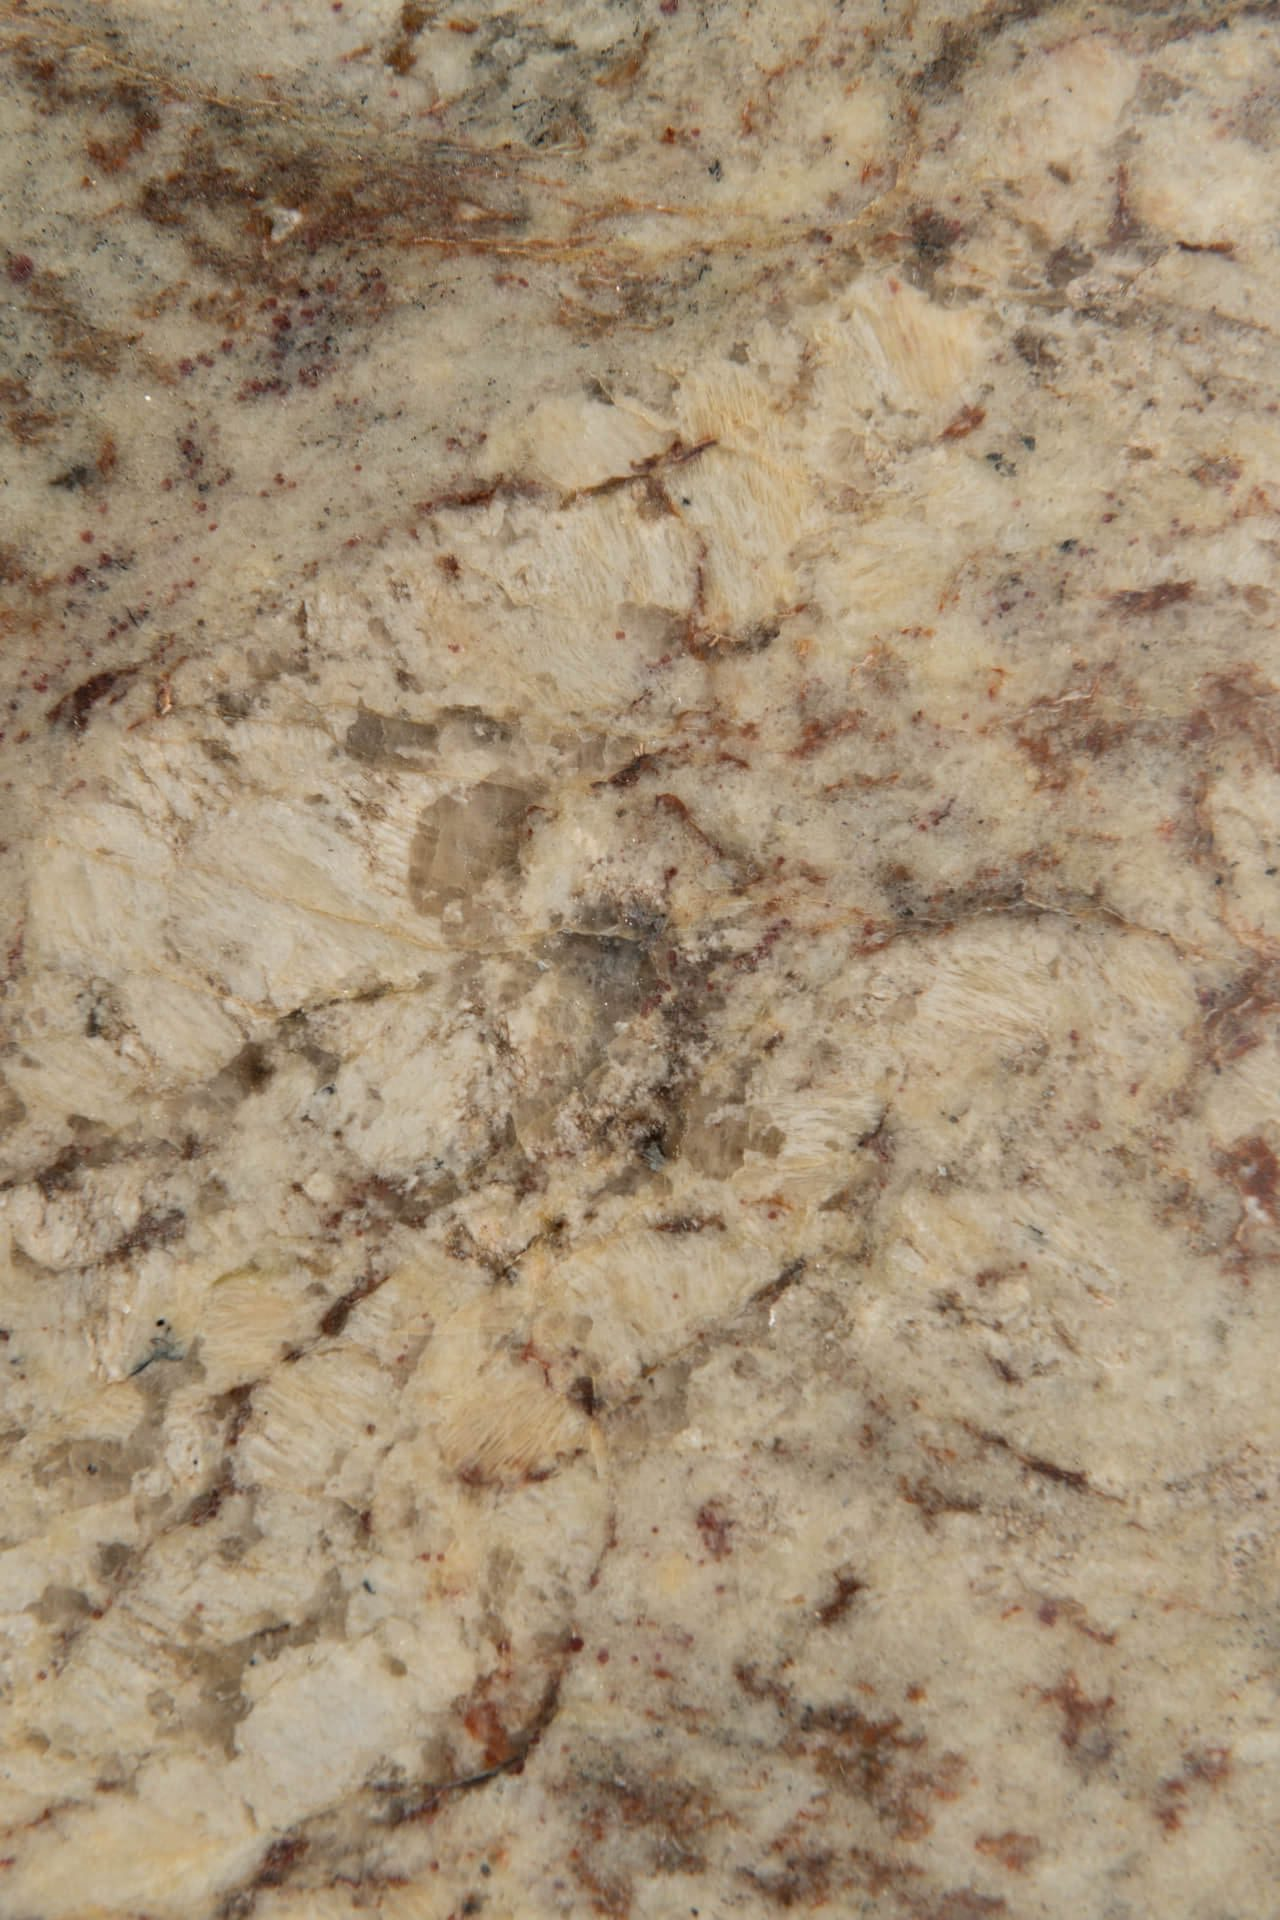 typhoon bordeaux 3 cu countertop - by Magnolia Countertops. A Countertop fabricator of Granite Countertops, Marble Countertops, and Quartz Countertops in Cookeville and Crossville TN.